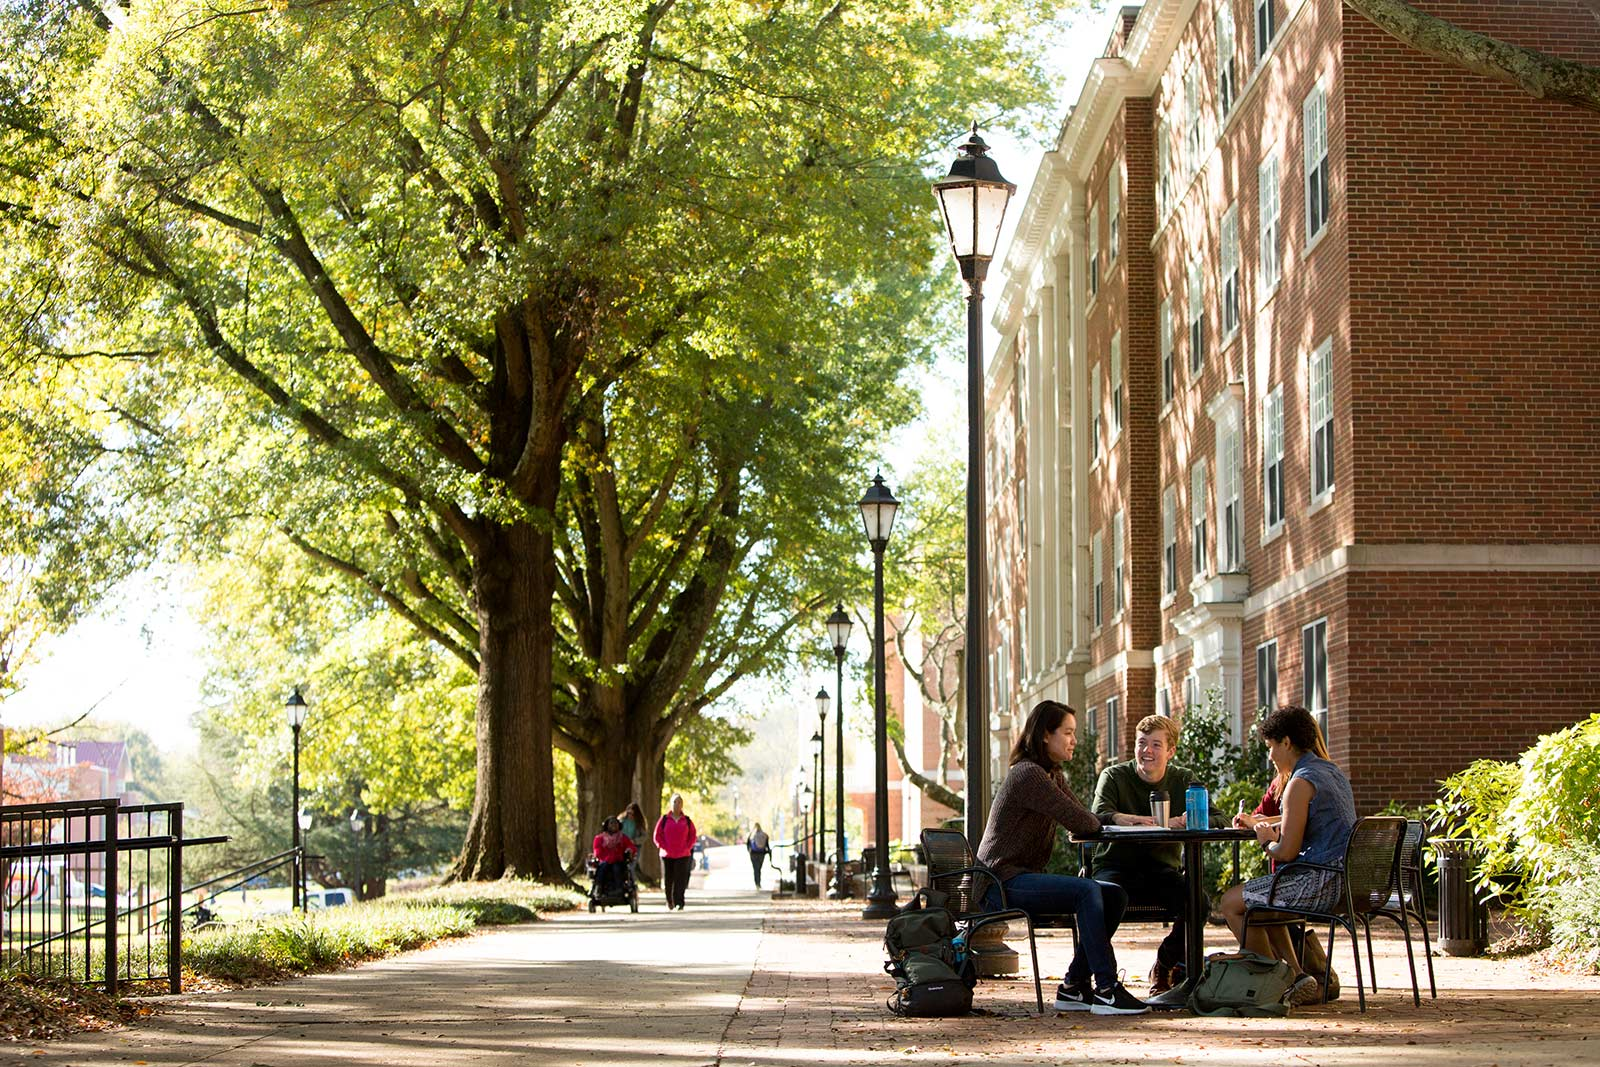 Campus is full of beautiful spots to pull up a chair and have a coffee, join an impromptu study session or just spend time with friends after class.